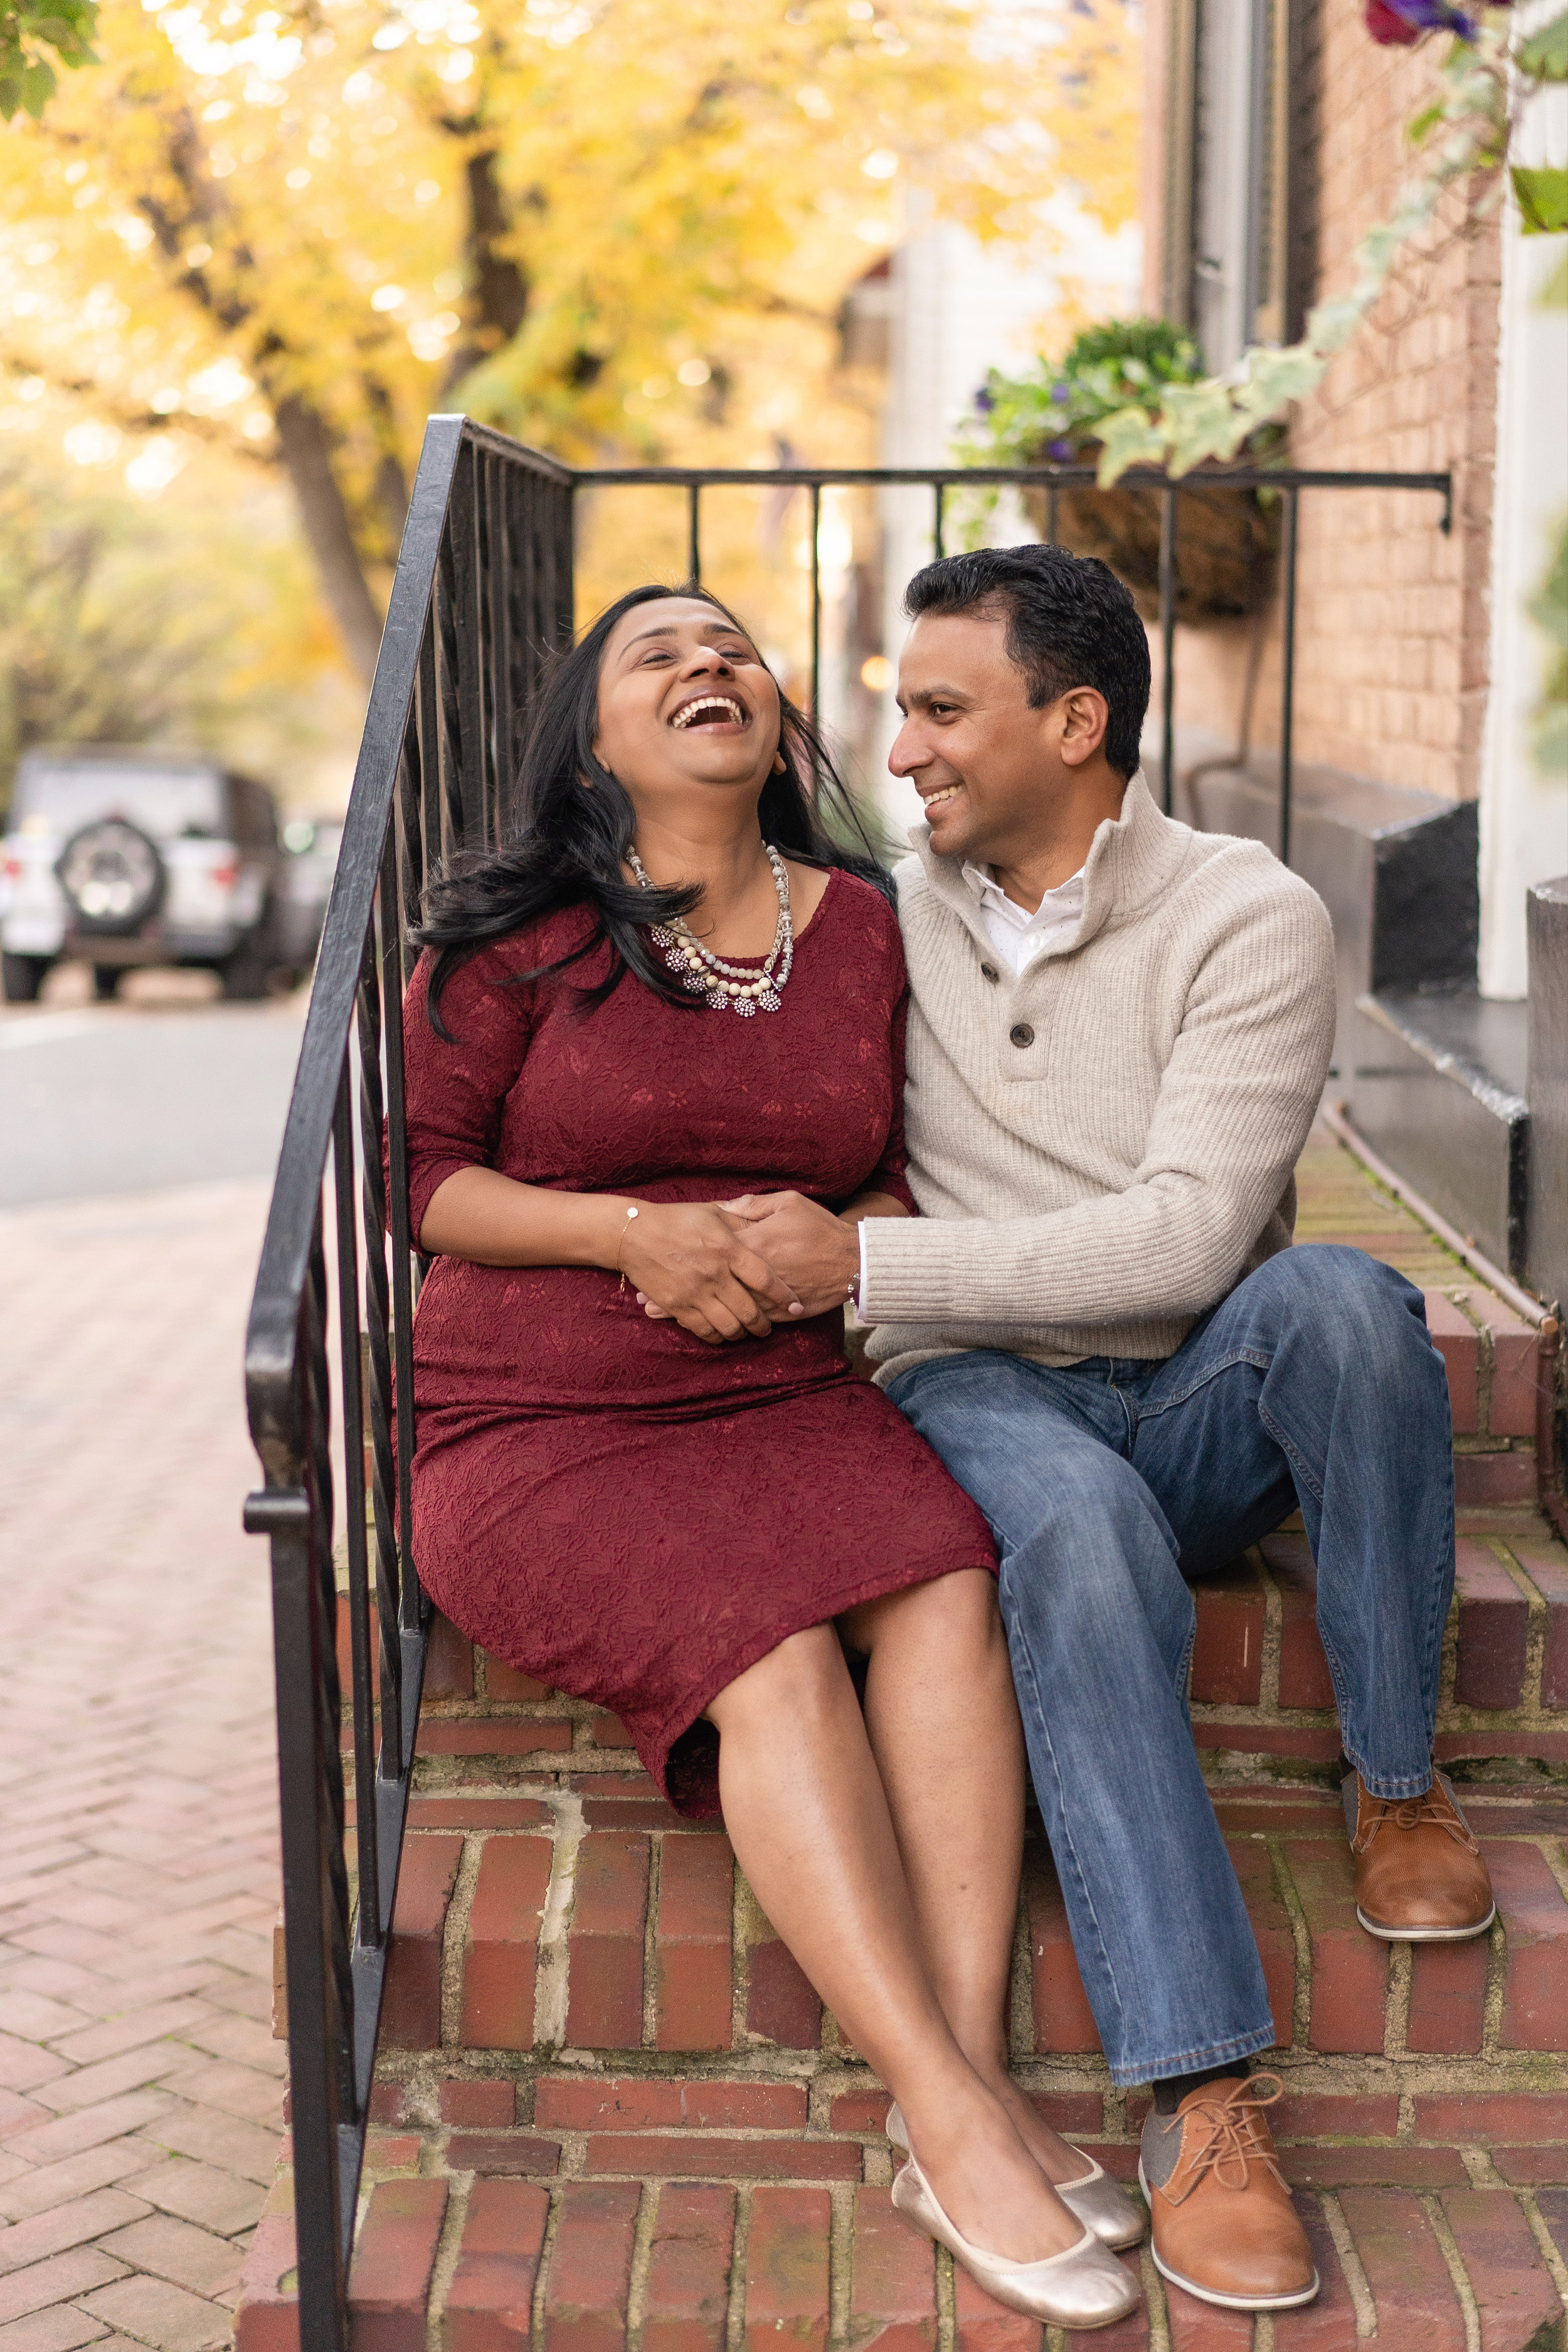 giggles are guaranteed during a maternity session with the best photographer near me, Katy Hayes Photography